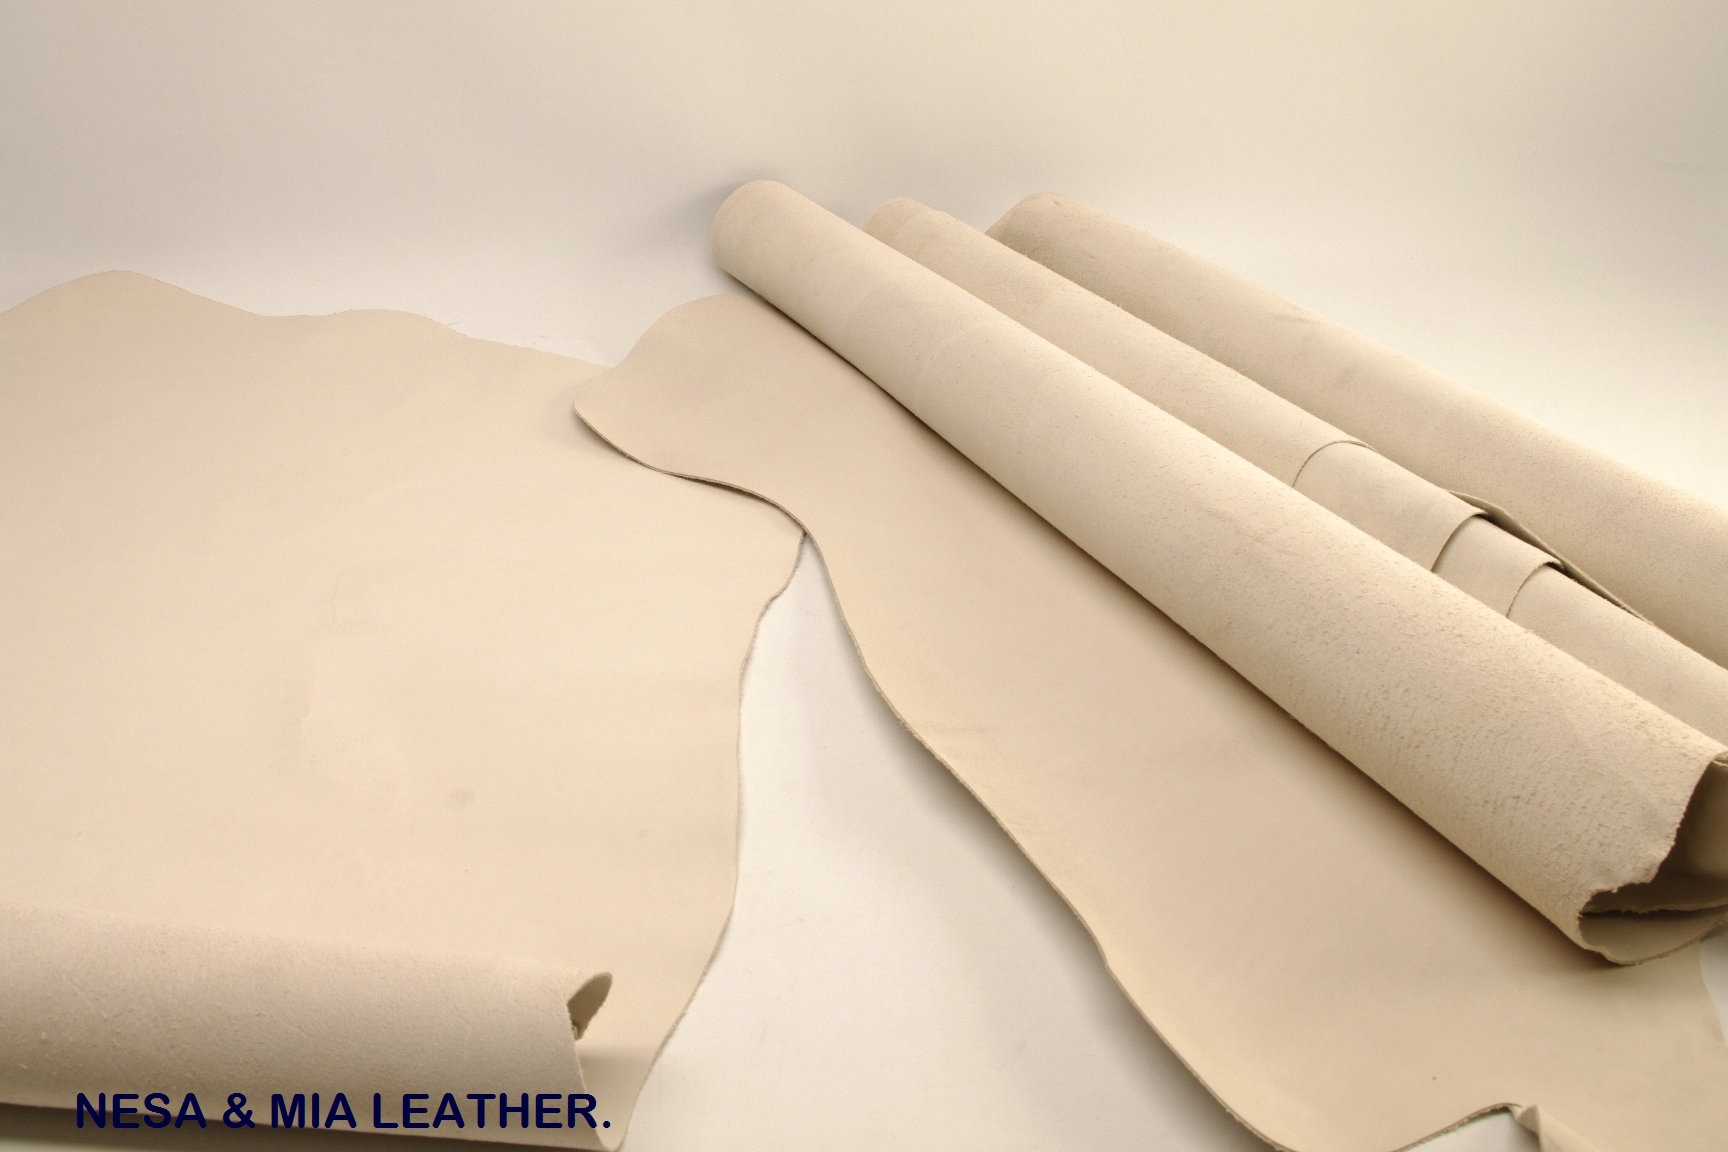 full vegetable tanned cow crust leather